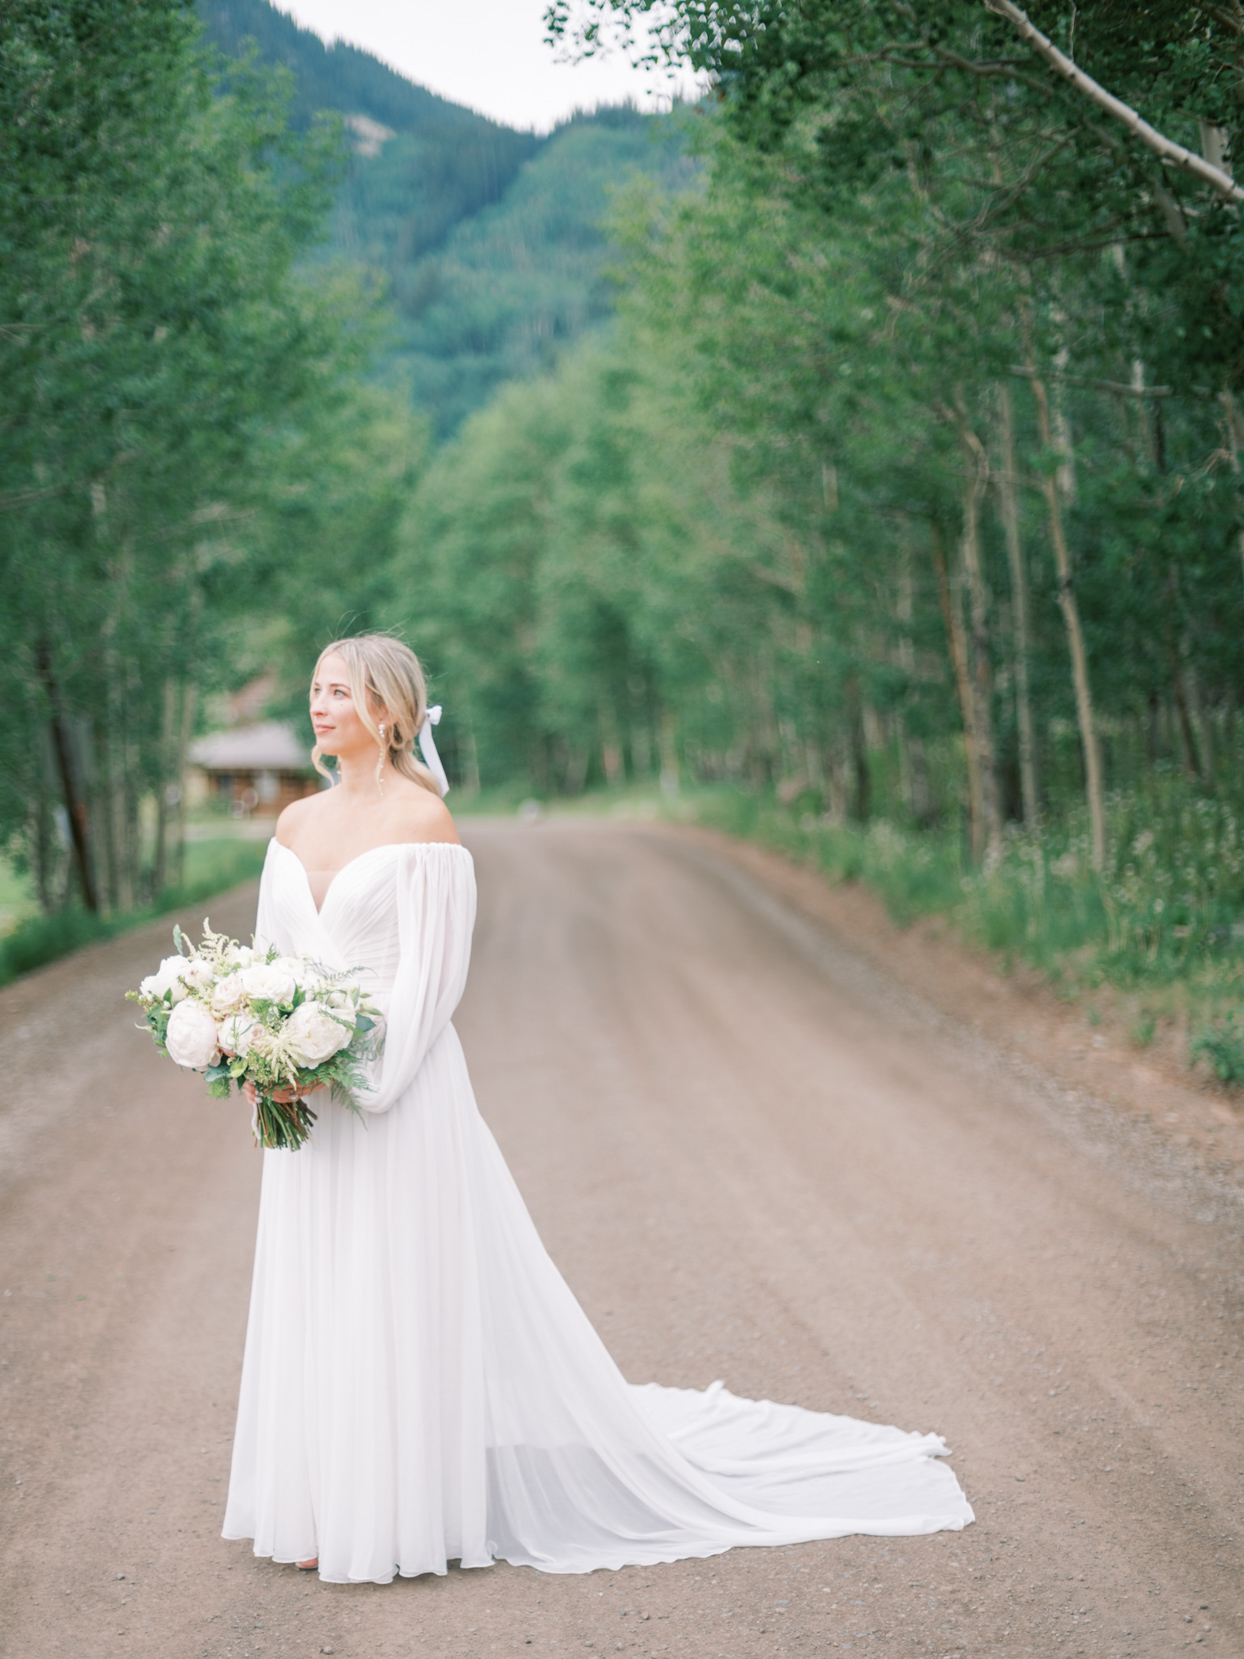 off-the-shoulder wedding dresss with silk chiffon with billowing sleeves